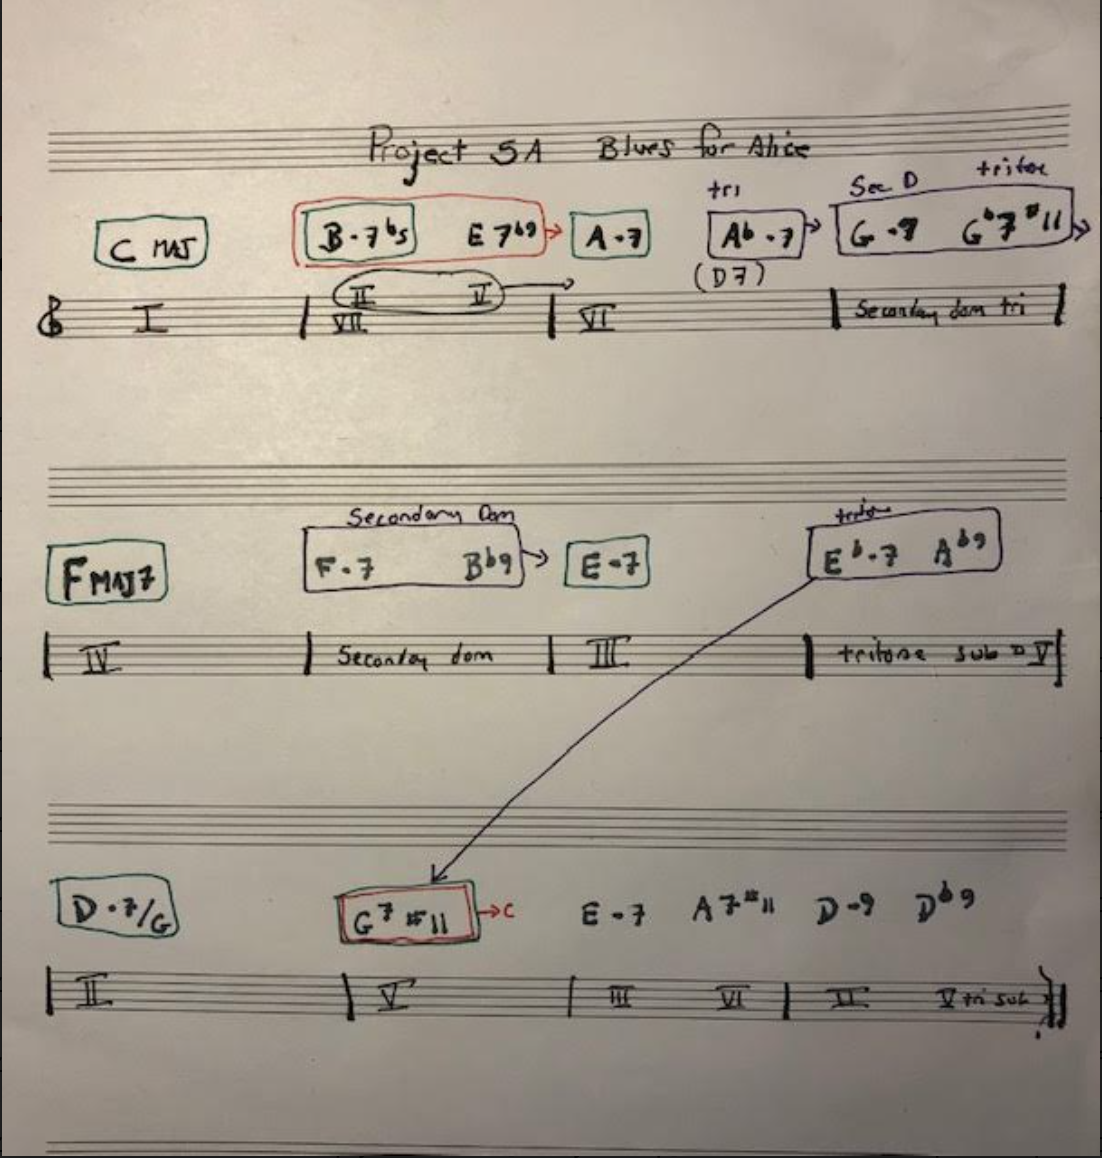 Howard Roberts Super Chops: study group for a tune based practice routine-screen-shot-2021-02-07-3-50-15-pm-png